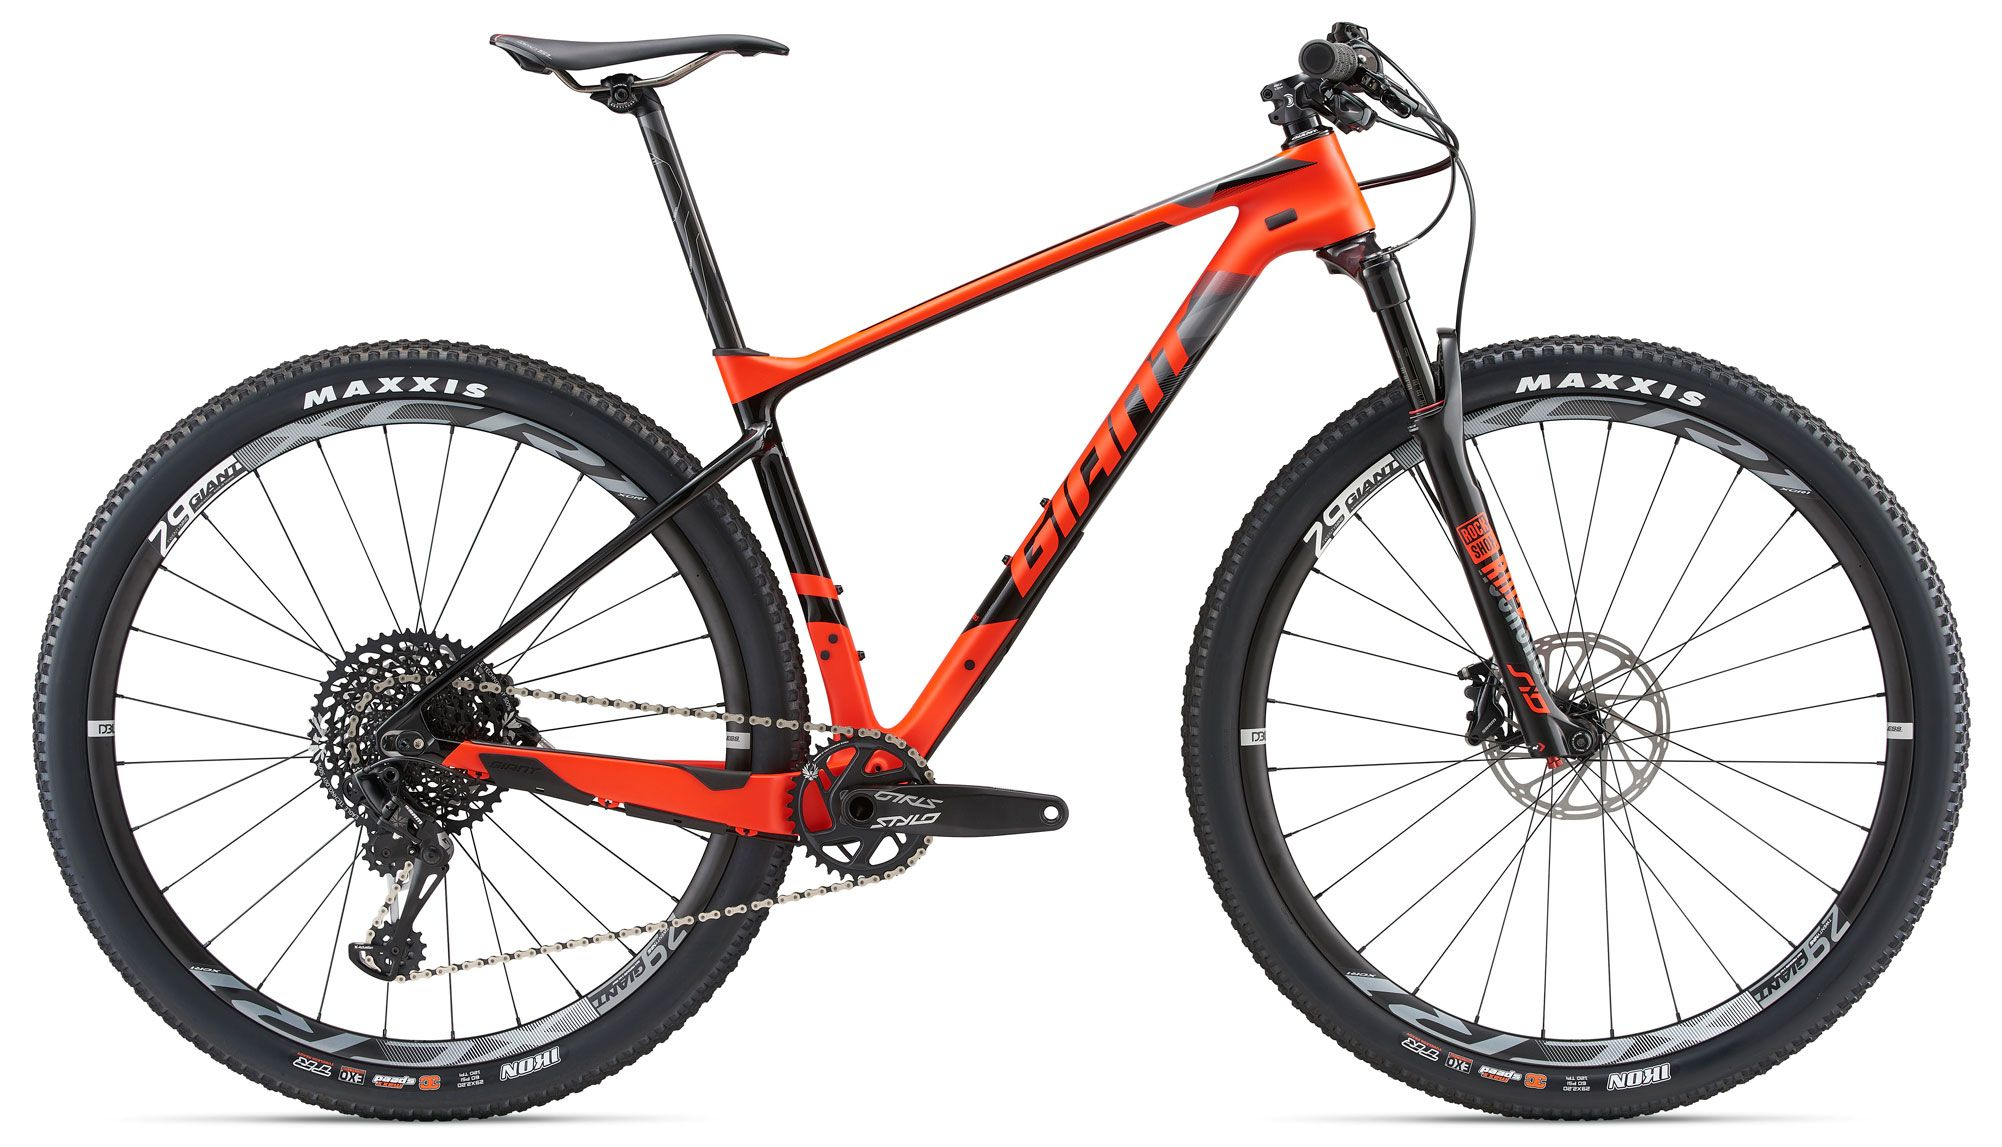 Велосипед Giant XTC Advanced 29er 1 2018 велосипед giant trinity advanced pro 1 2016